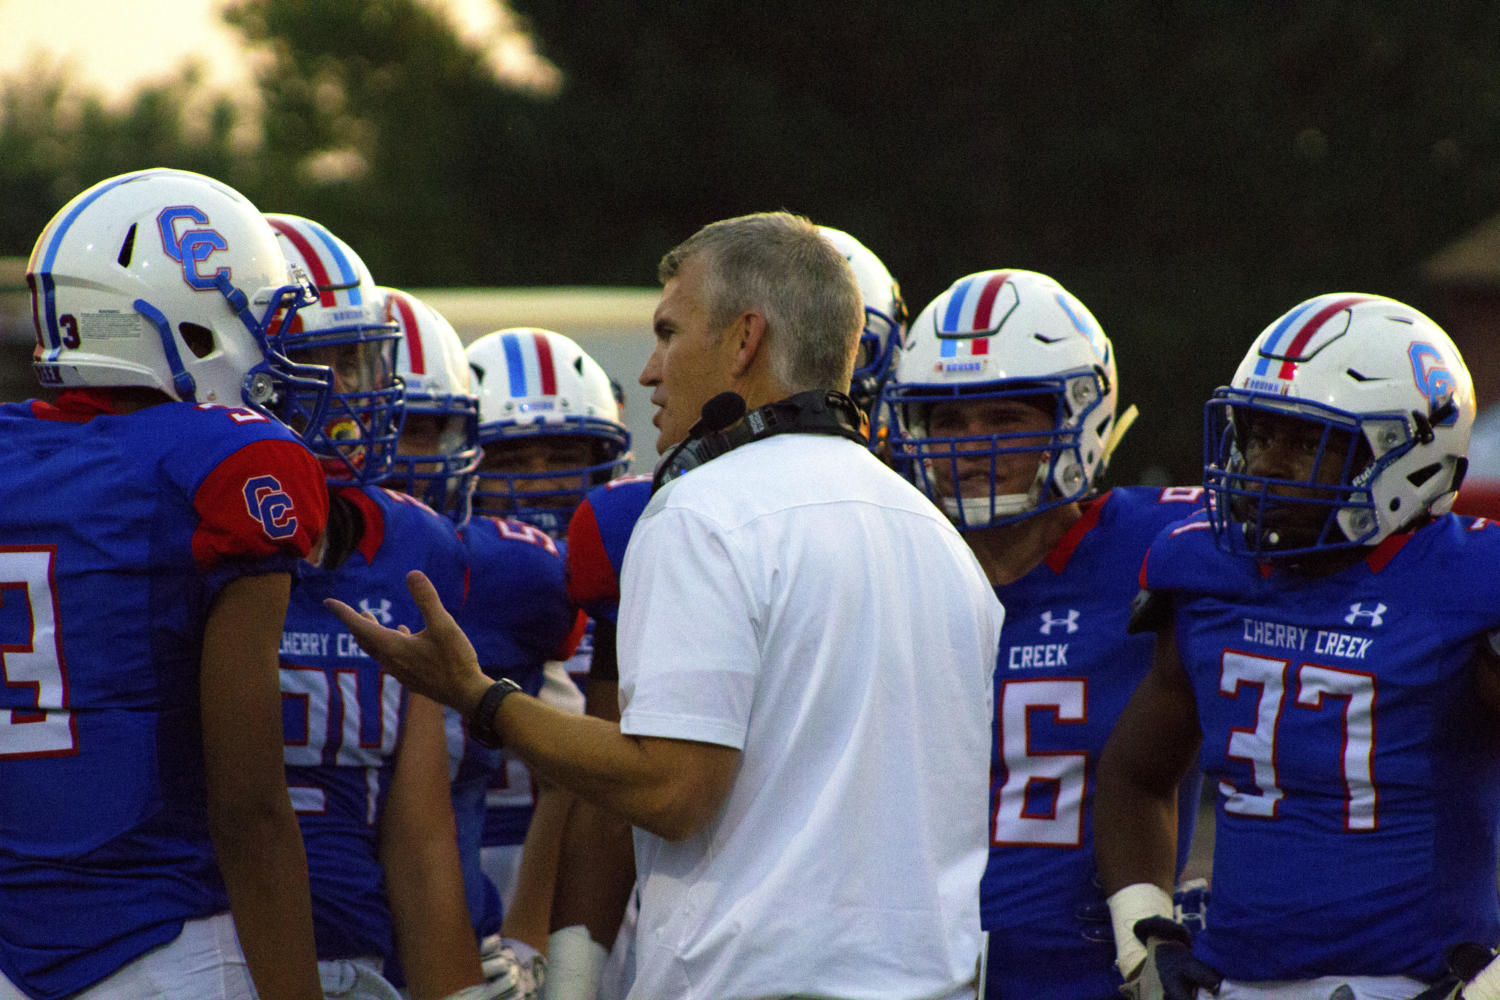 Q&A with Coach Doherty on Loss to Regis